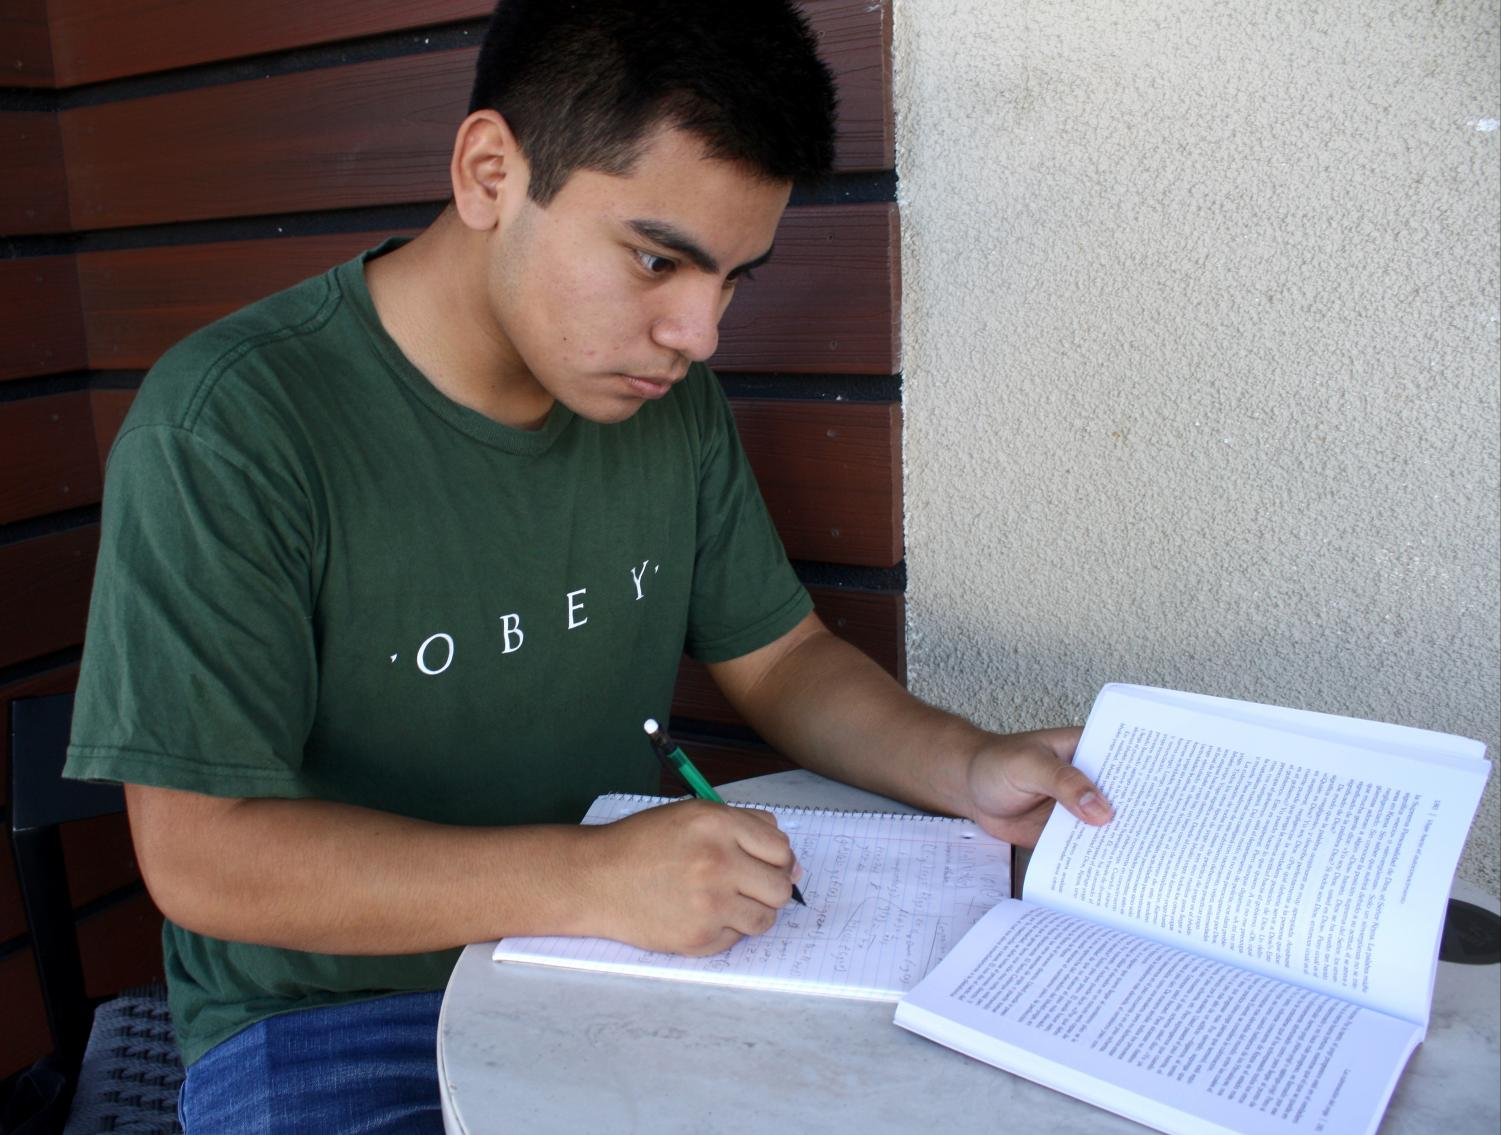 Chris Lopez, A Glendale Community College freshmen is studying for his English exam coming up Thursday at Starbucks in Montrose, Calif. On Sunday Sept. 23rd, 2018.